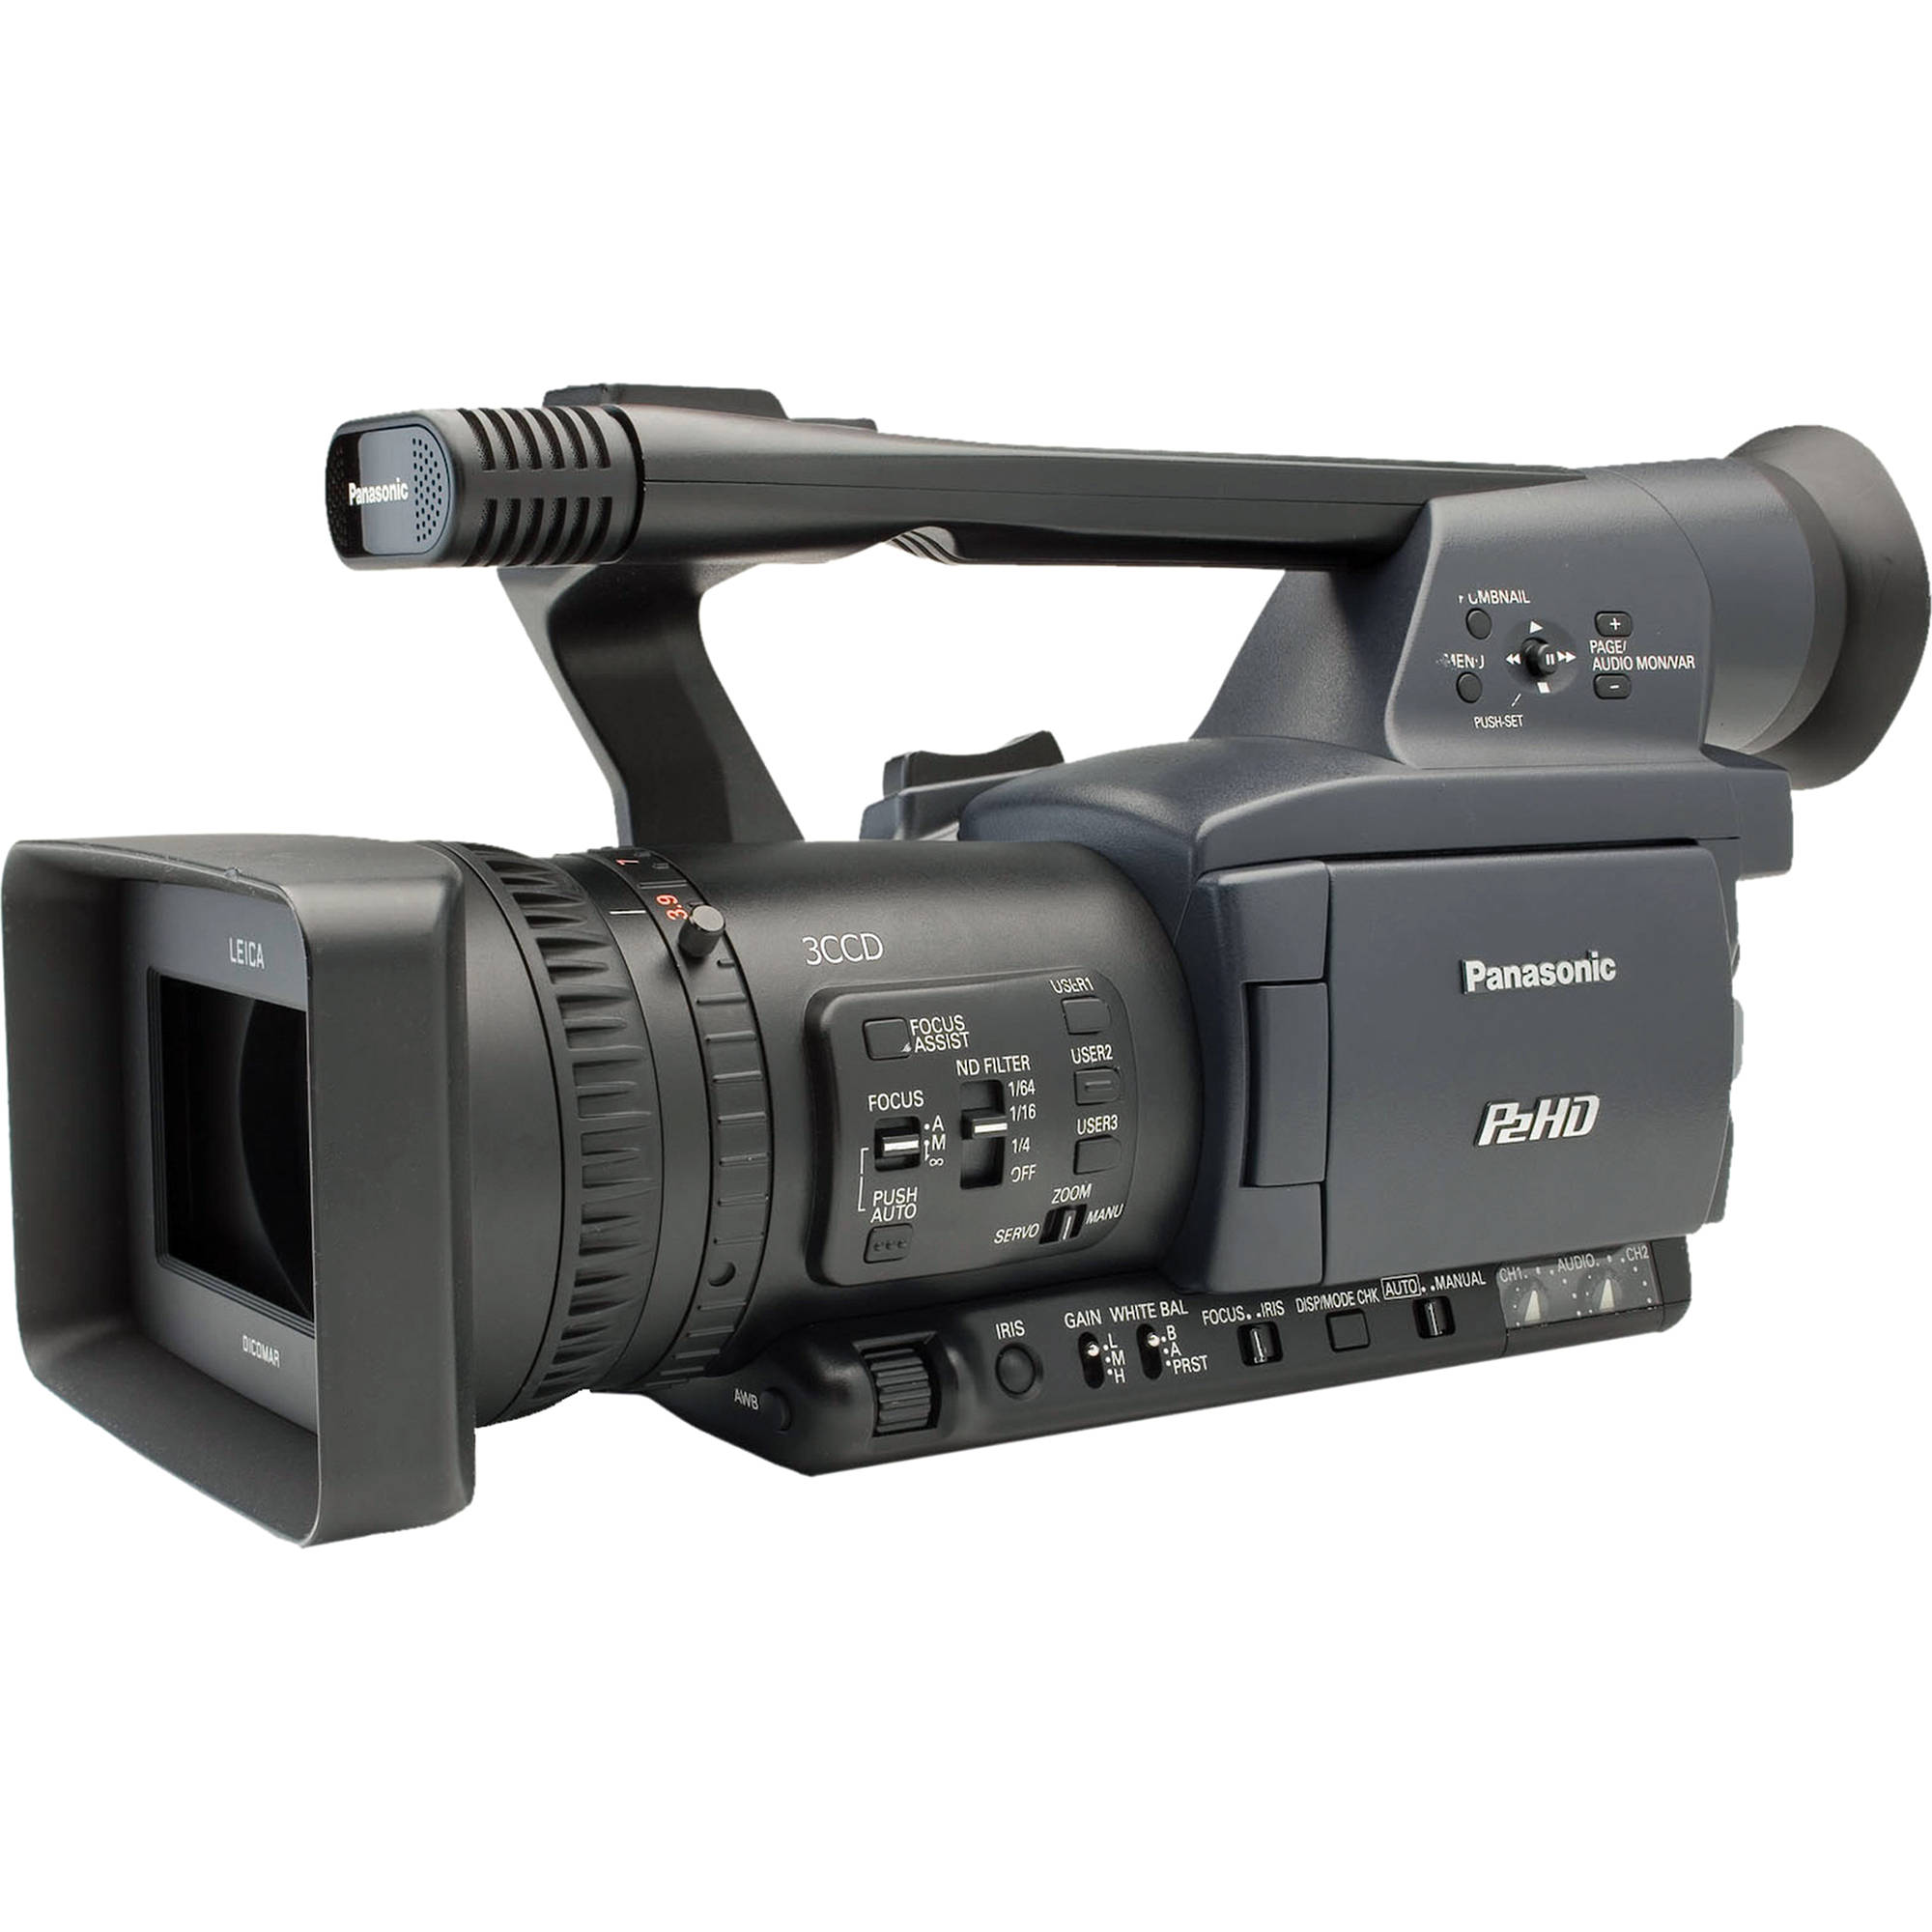 Panasonic Ag Hpx170 P2hd Solid State Camcorder Aghpx170pj B Amp H border=